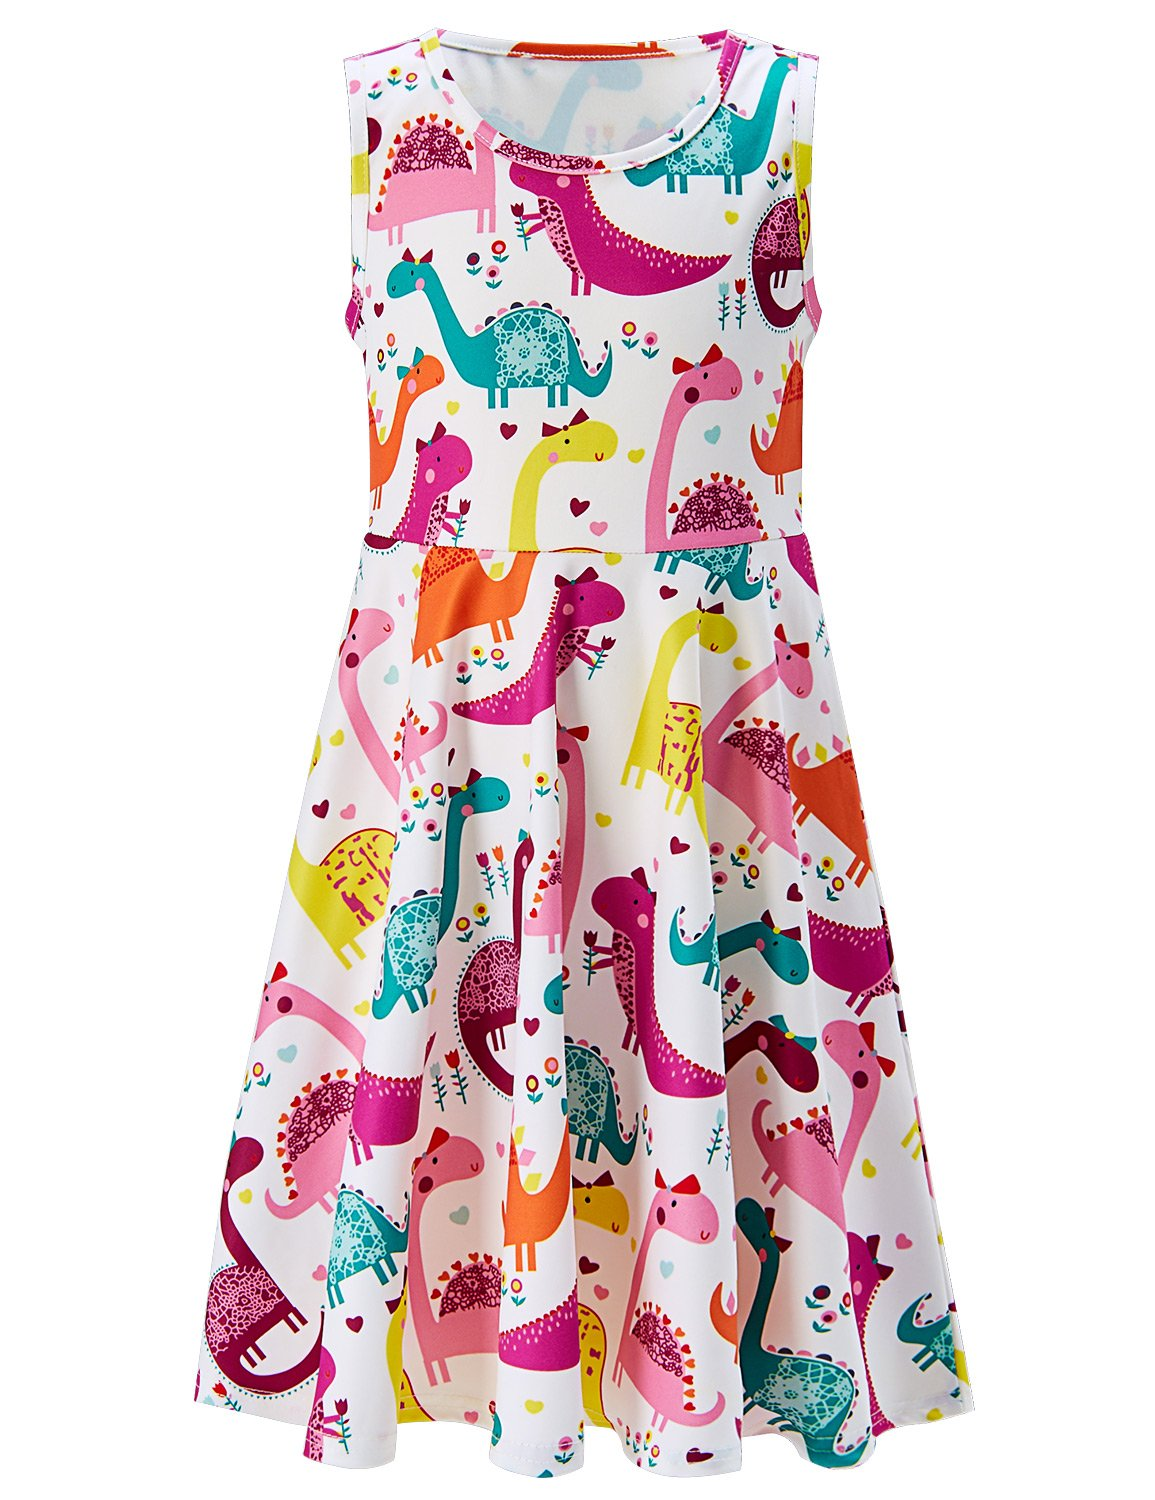 RAISEVERN Girls Summer Sleeveless Dress Dinosaur Printed Dress for Kids 10-13T